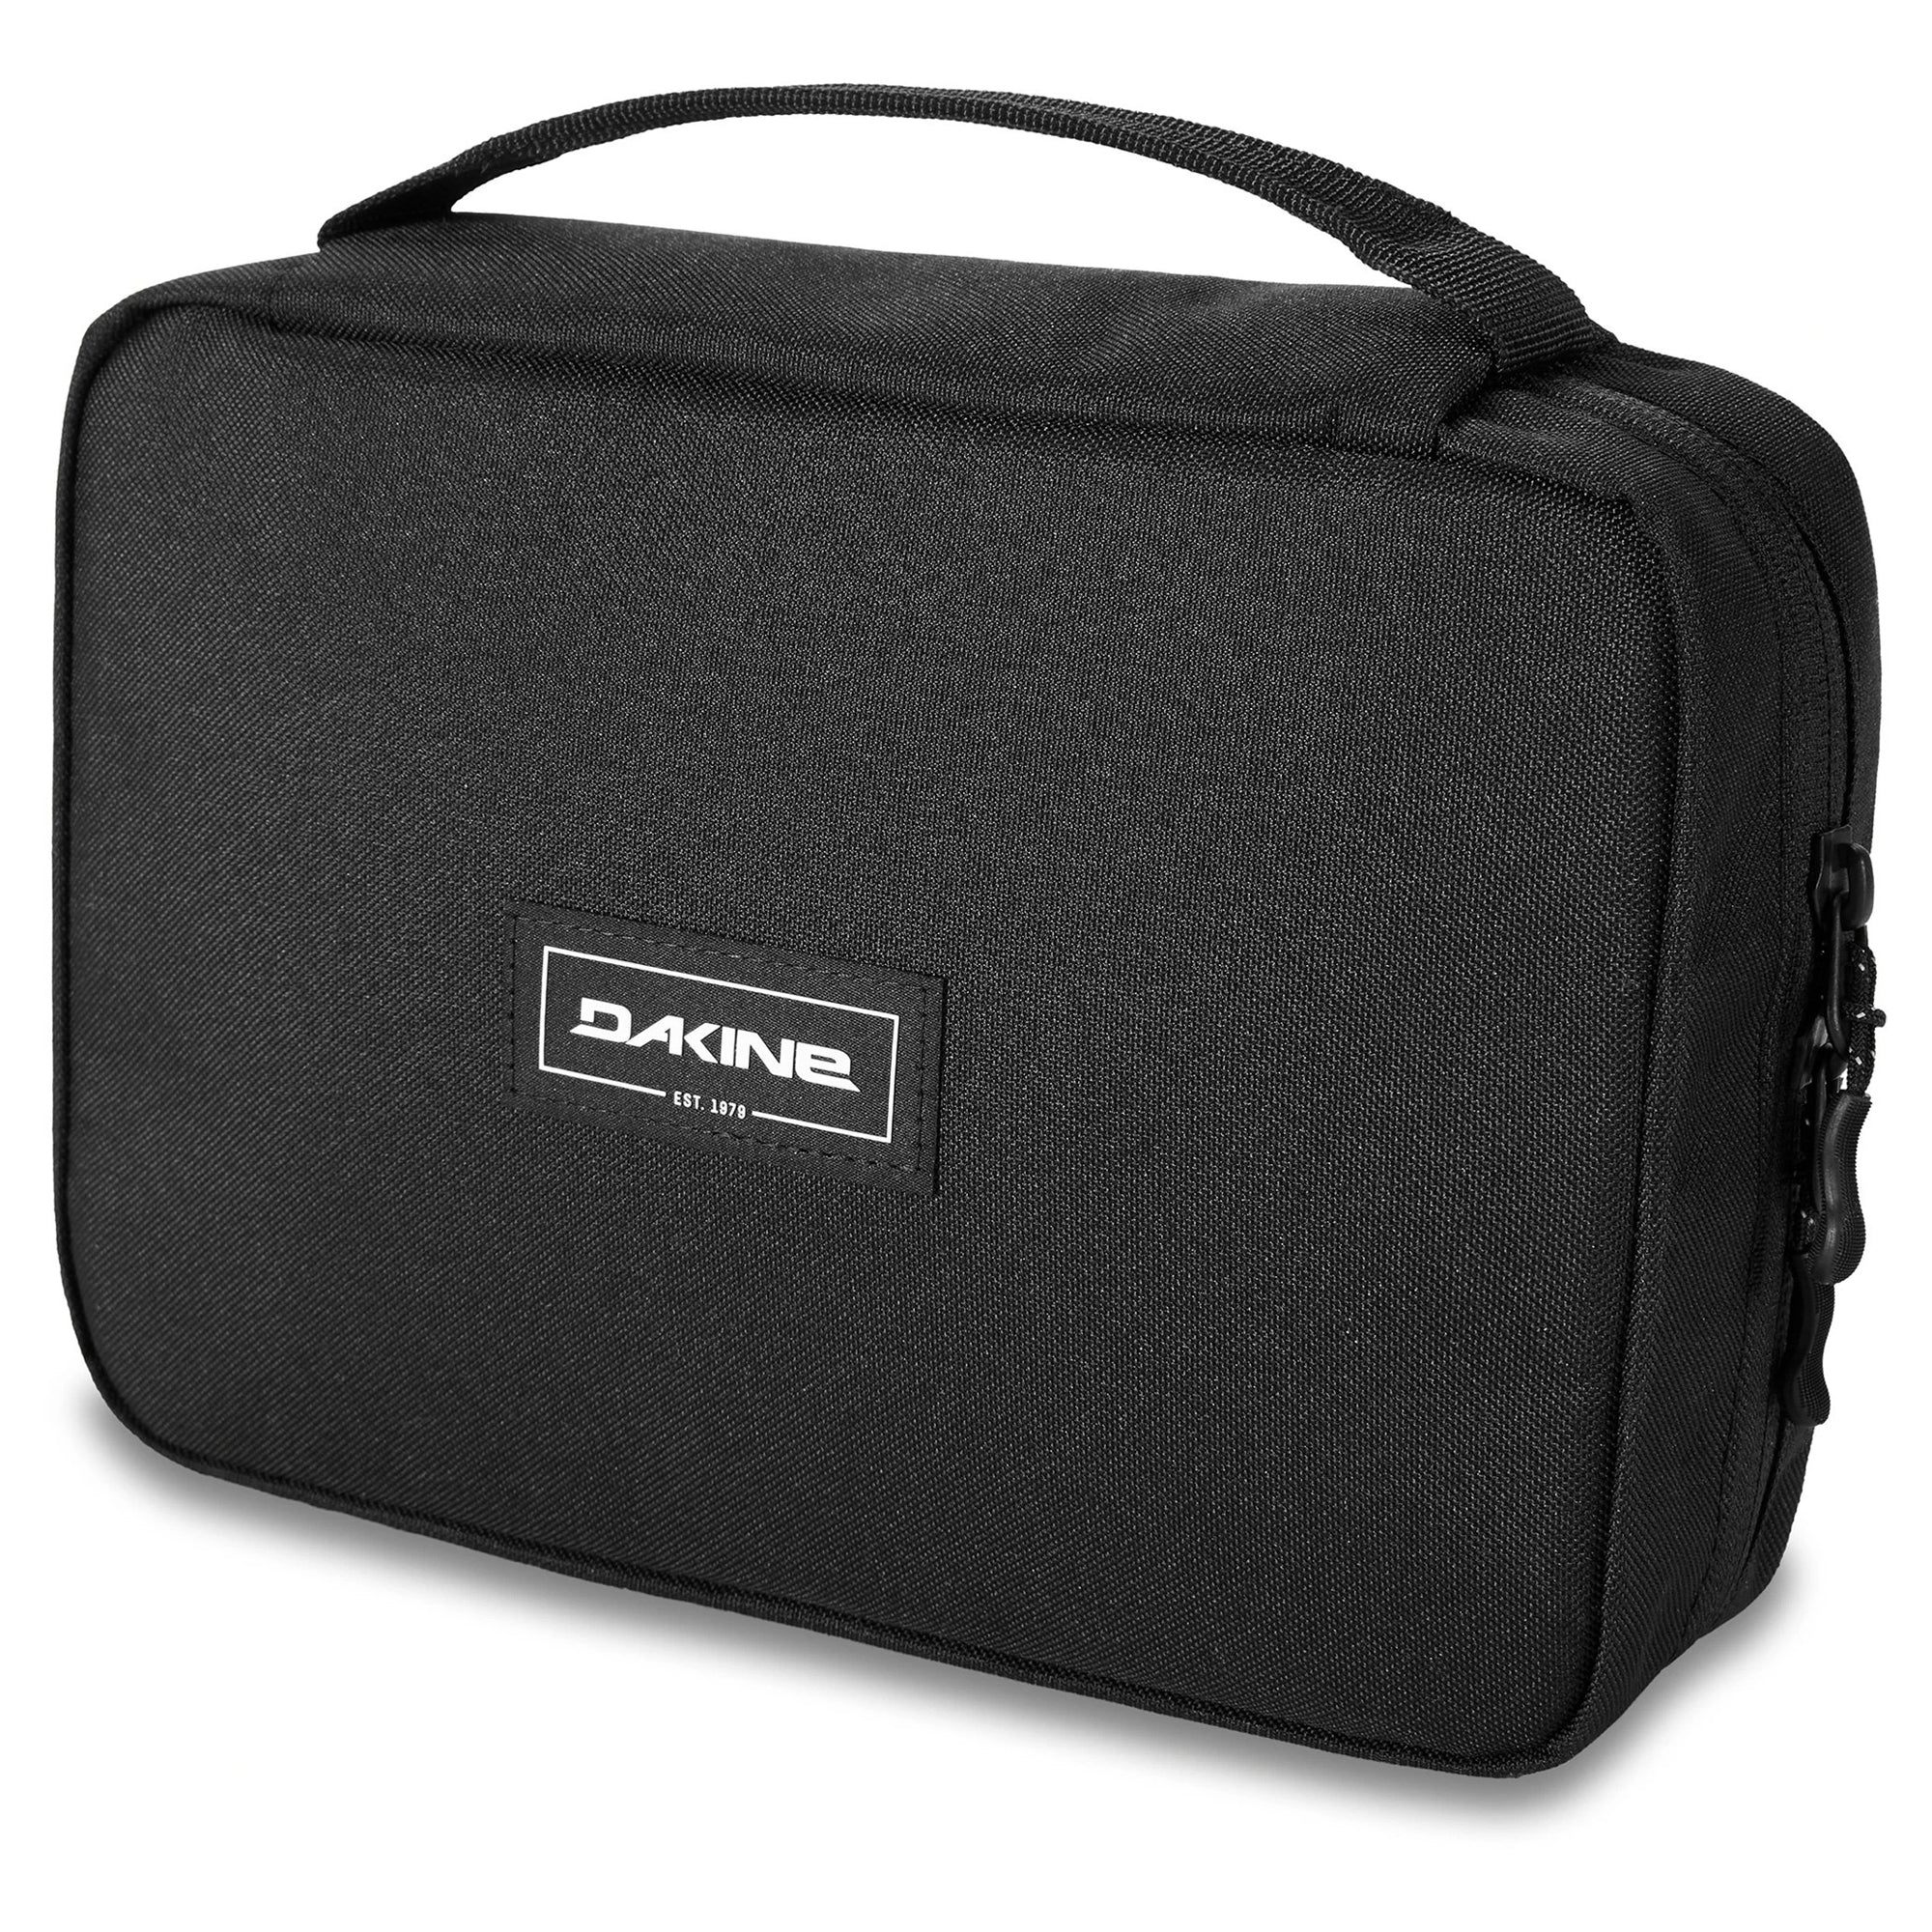 Dakine Fin Stash Case